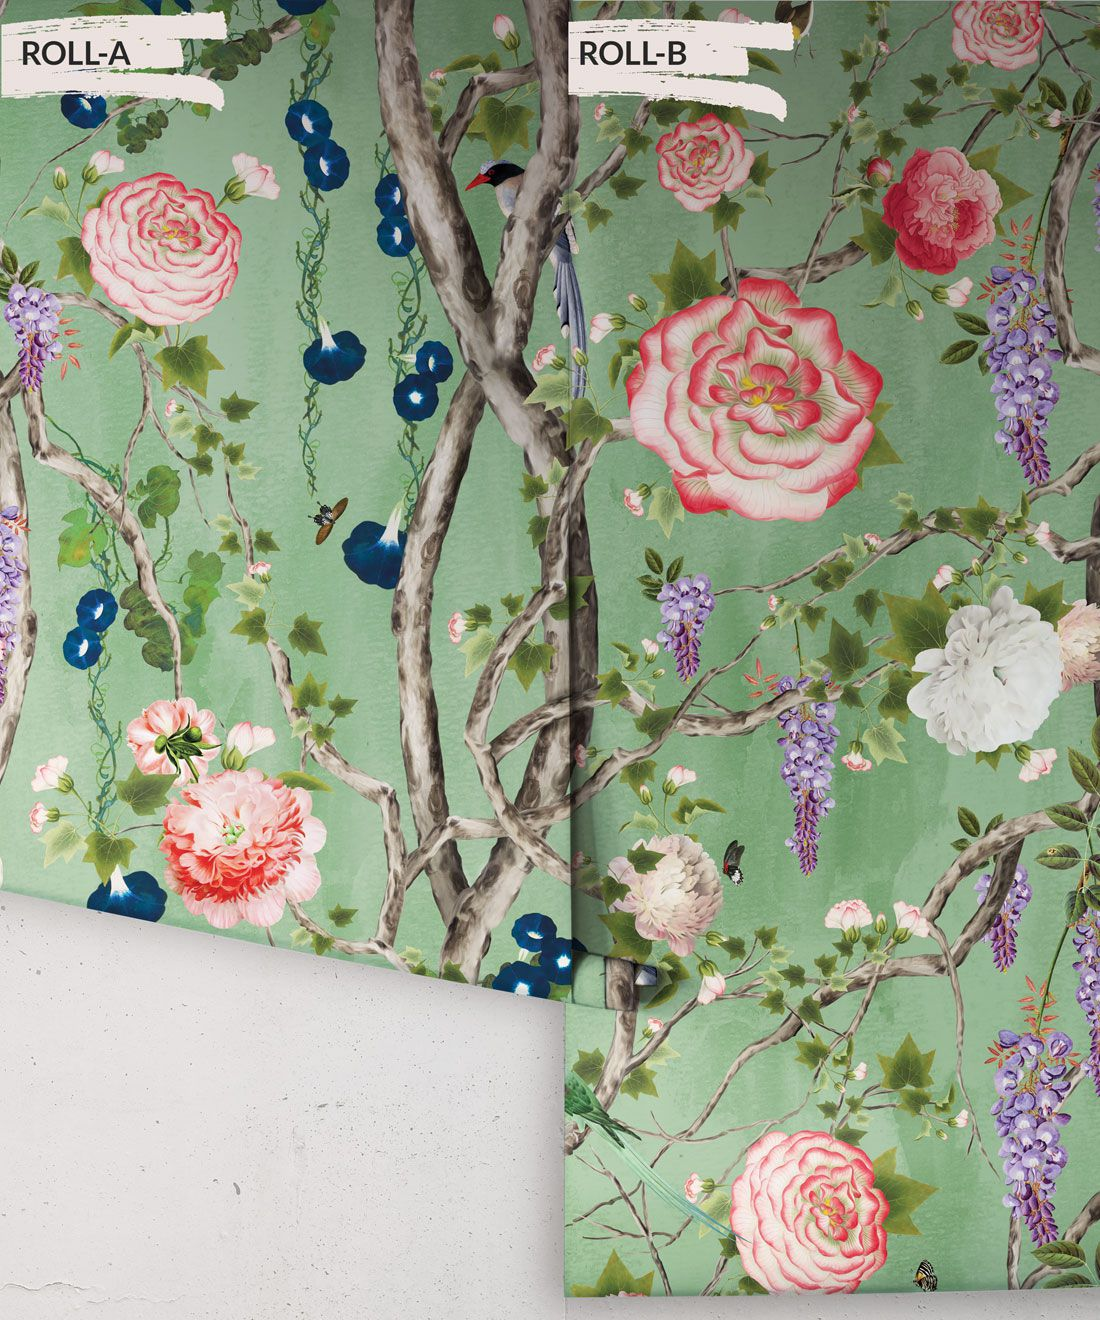 Empress Wallpaper • Romantic Wallpaper • Floral Wallpaper • Chinoiserie Wallpaper • Tea Garden Green colour wallpaper rolls